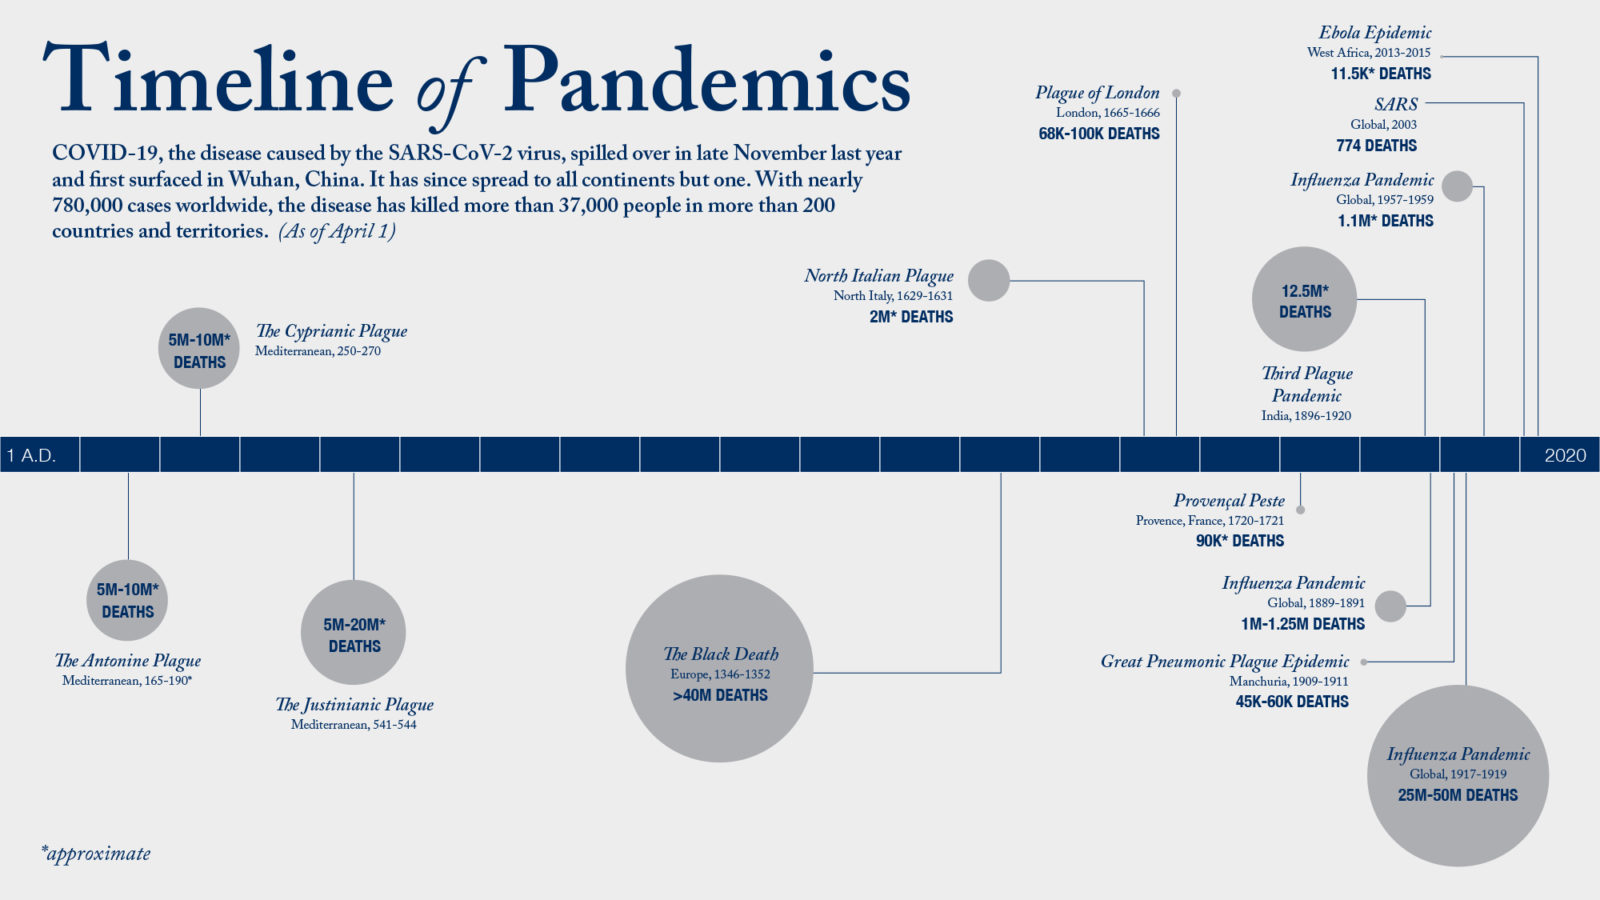 Graphic illustrates the major pandemics from 165 to 2020.